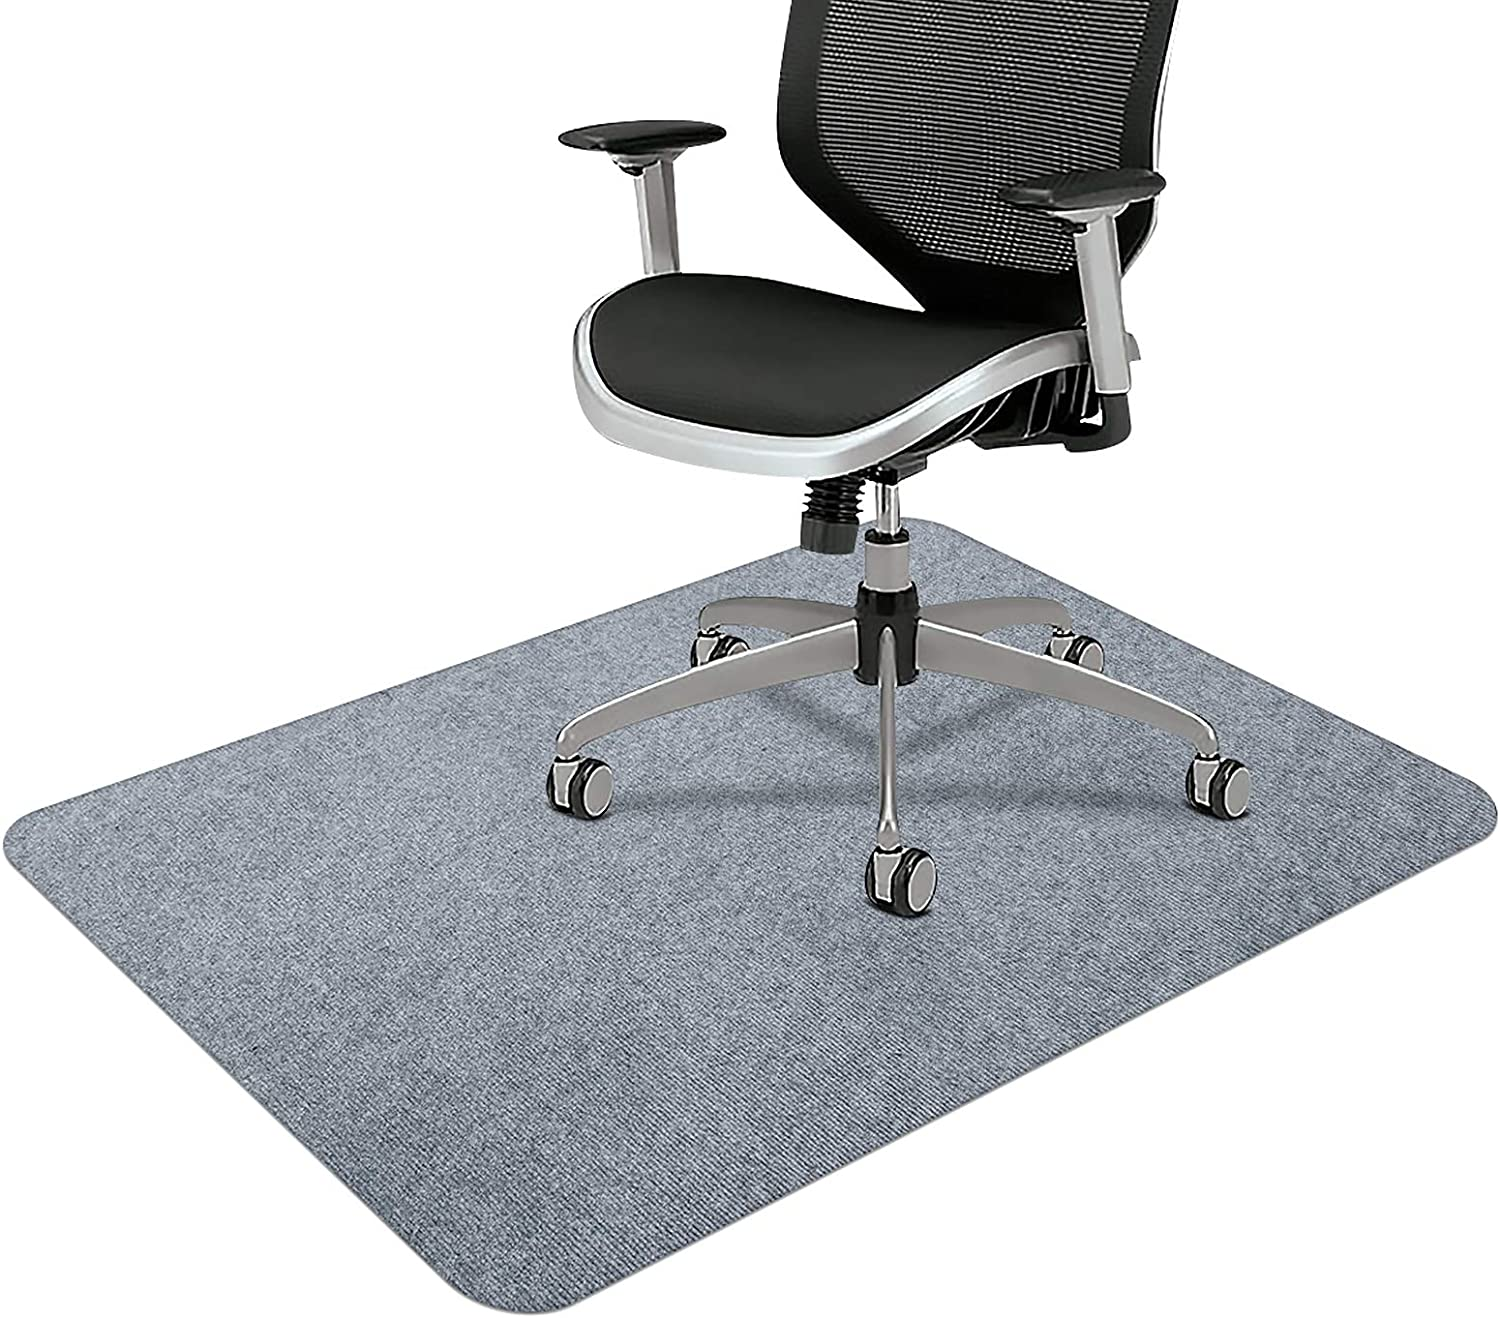 "Office Chair Mat, Upgraded Version - Office Desk Chair Mat for Hardwood Floors, 1/6"" Thick 55""x35"" Hard Floor Protector Mat, Multi-Purpose Chair Carpet for Home (Light Gray)"